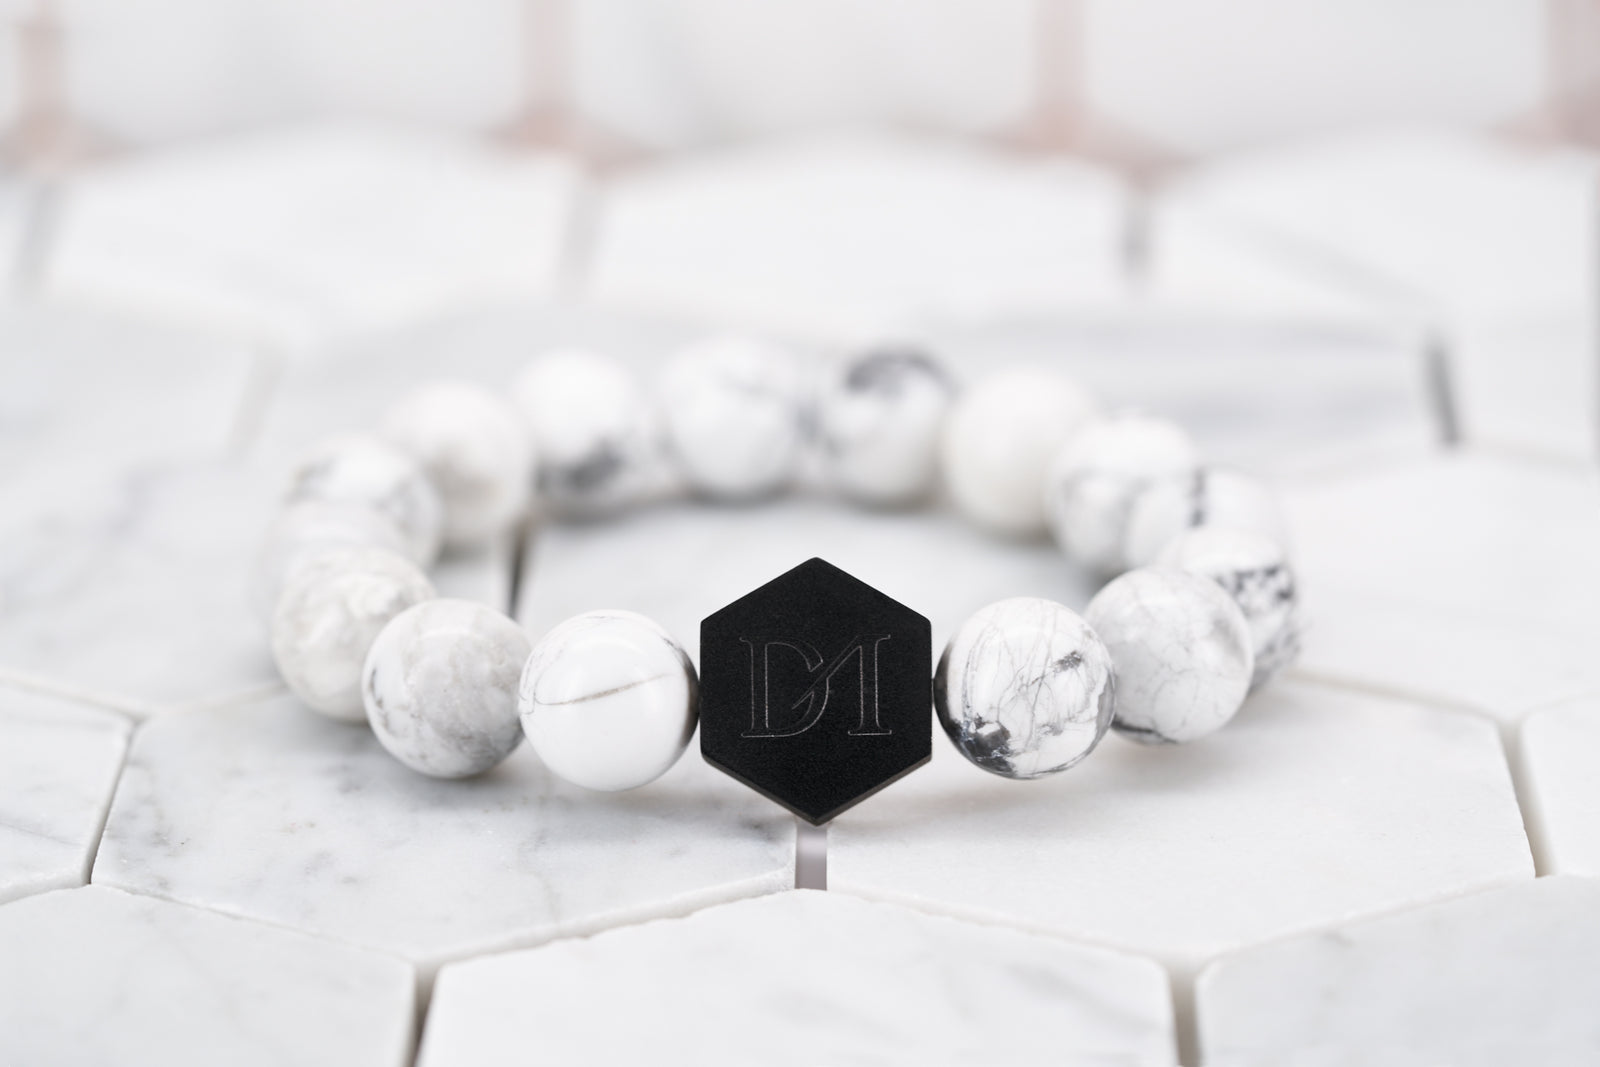 A front view image of the Dear Martian white howlite stone beaded bracelet with a black hexagon logo bead. The beaded bracelet is sitting on a white background.